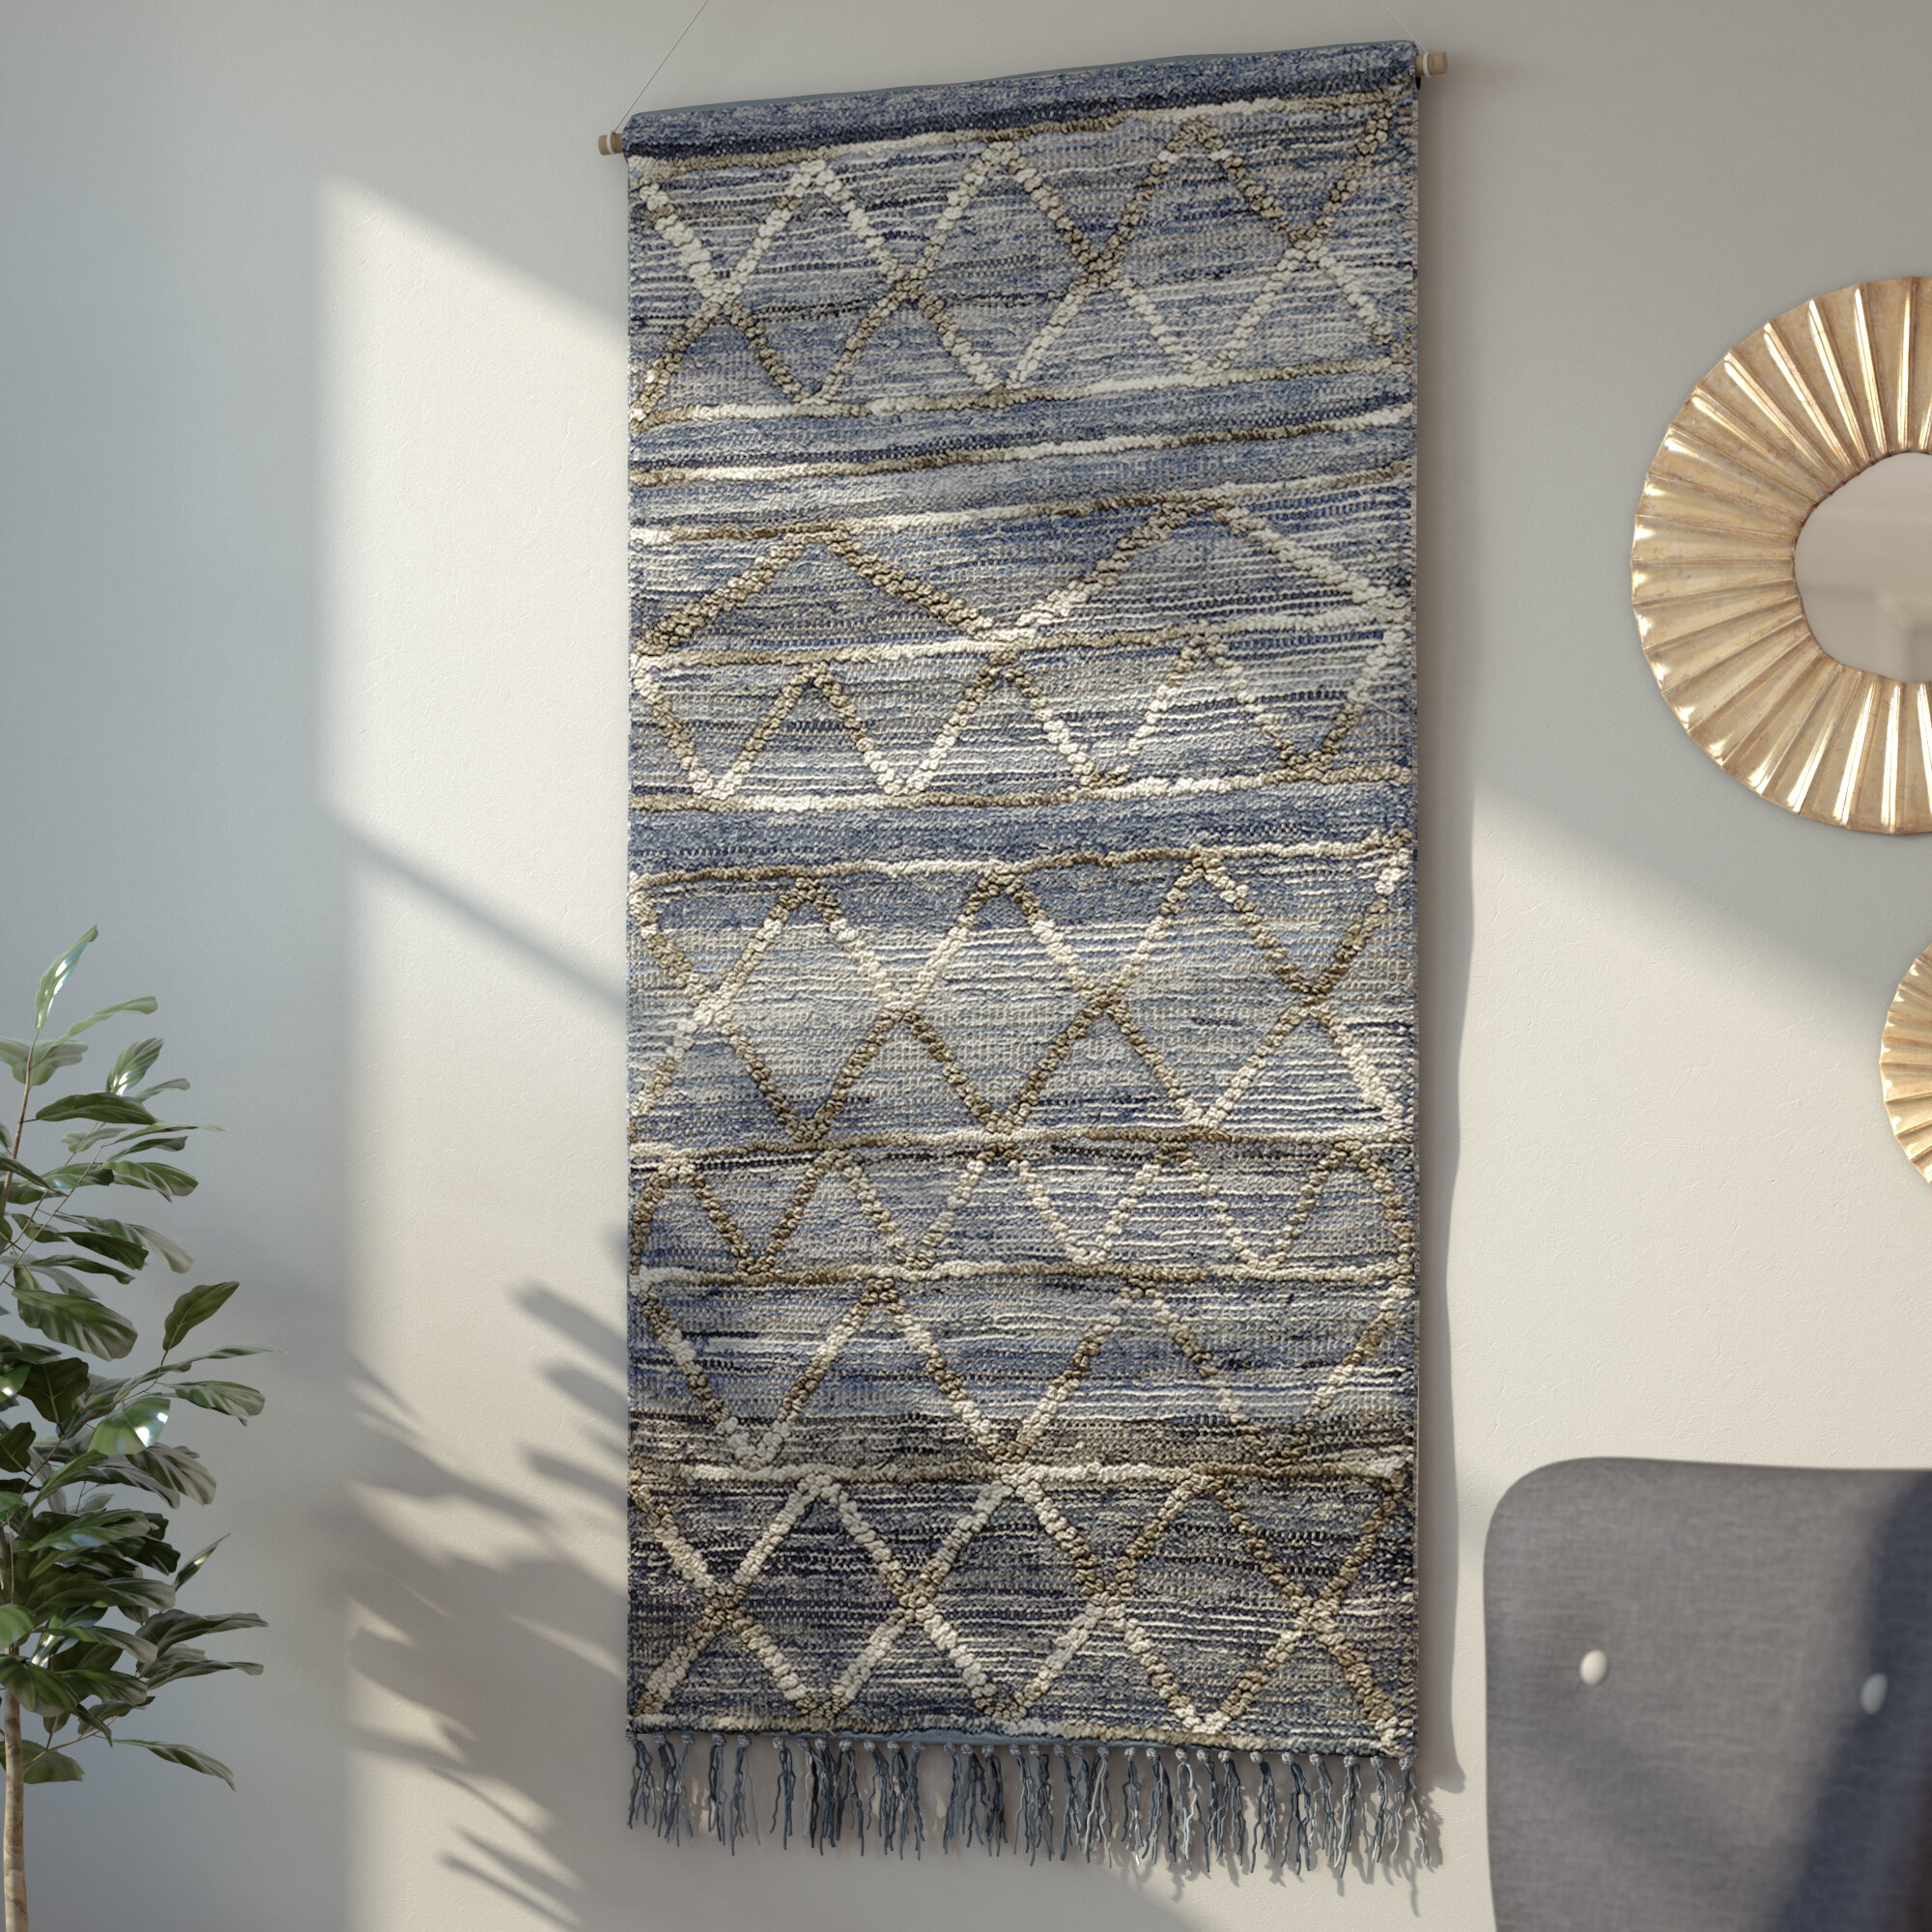 Blended Fabric Wall Hanging With Hanging Accessories With Most Current Blended Fabric Wall Hangings (View 2 of 20)